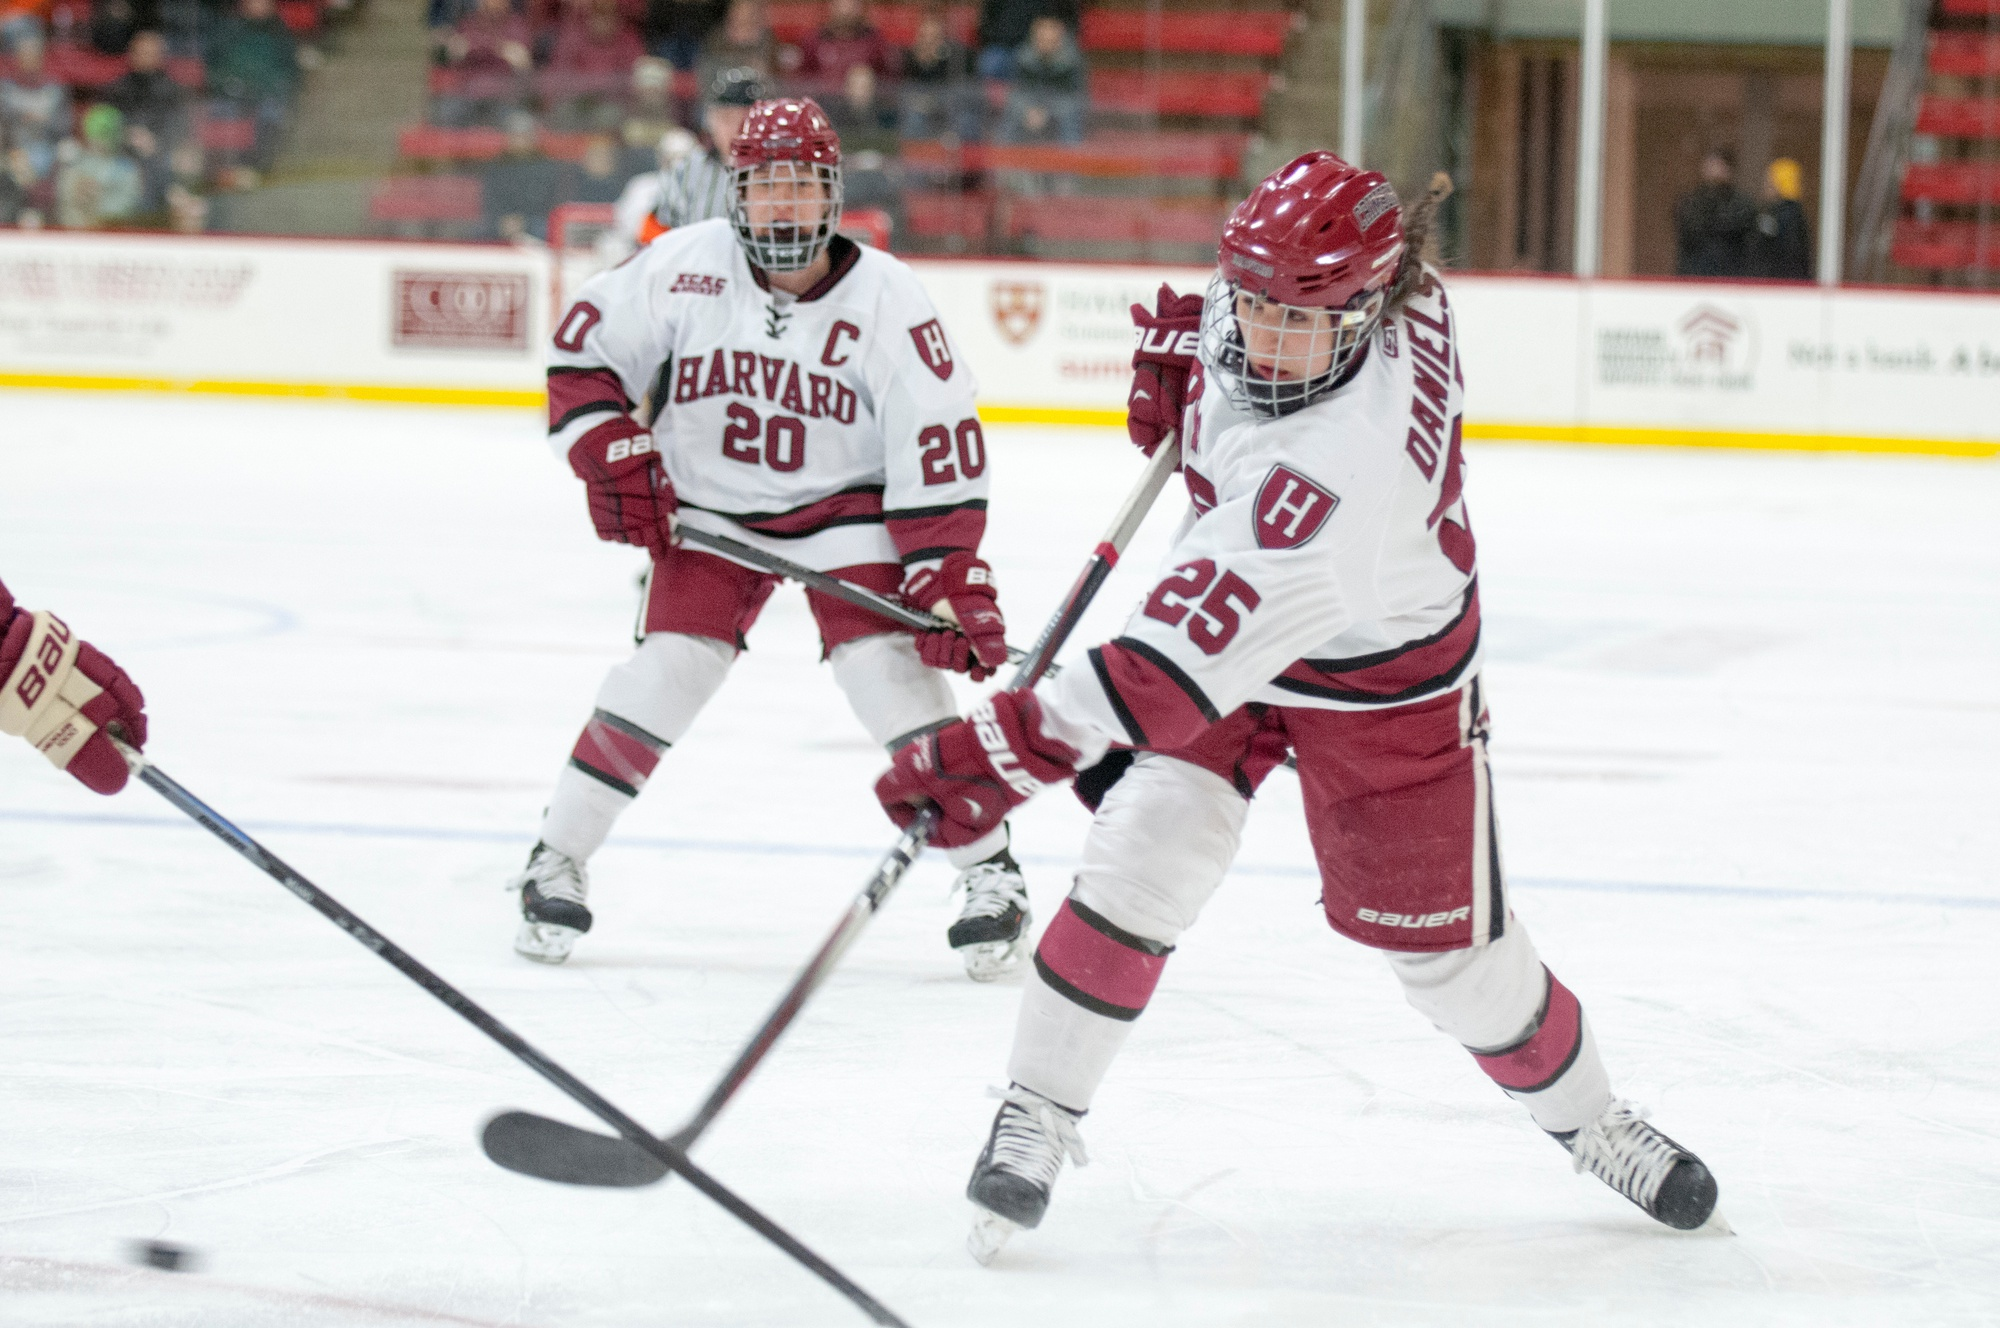 Sophomore Sydney Daniels takes a shot against Boston College in the Beanpot finals. The Crimson downed their local rivals, taking home the title with a 3-2 victory.